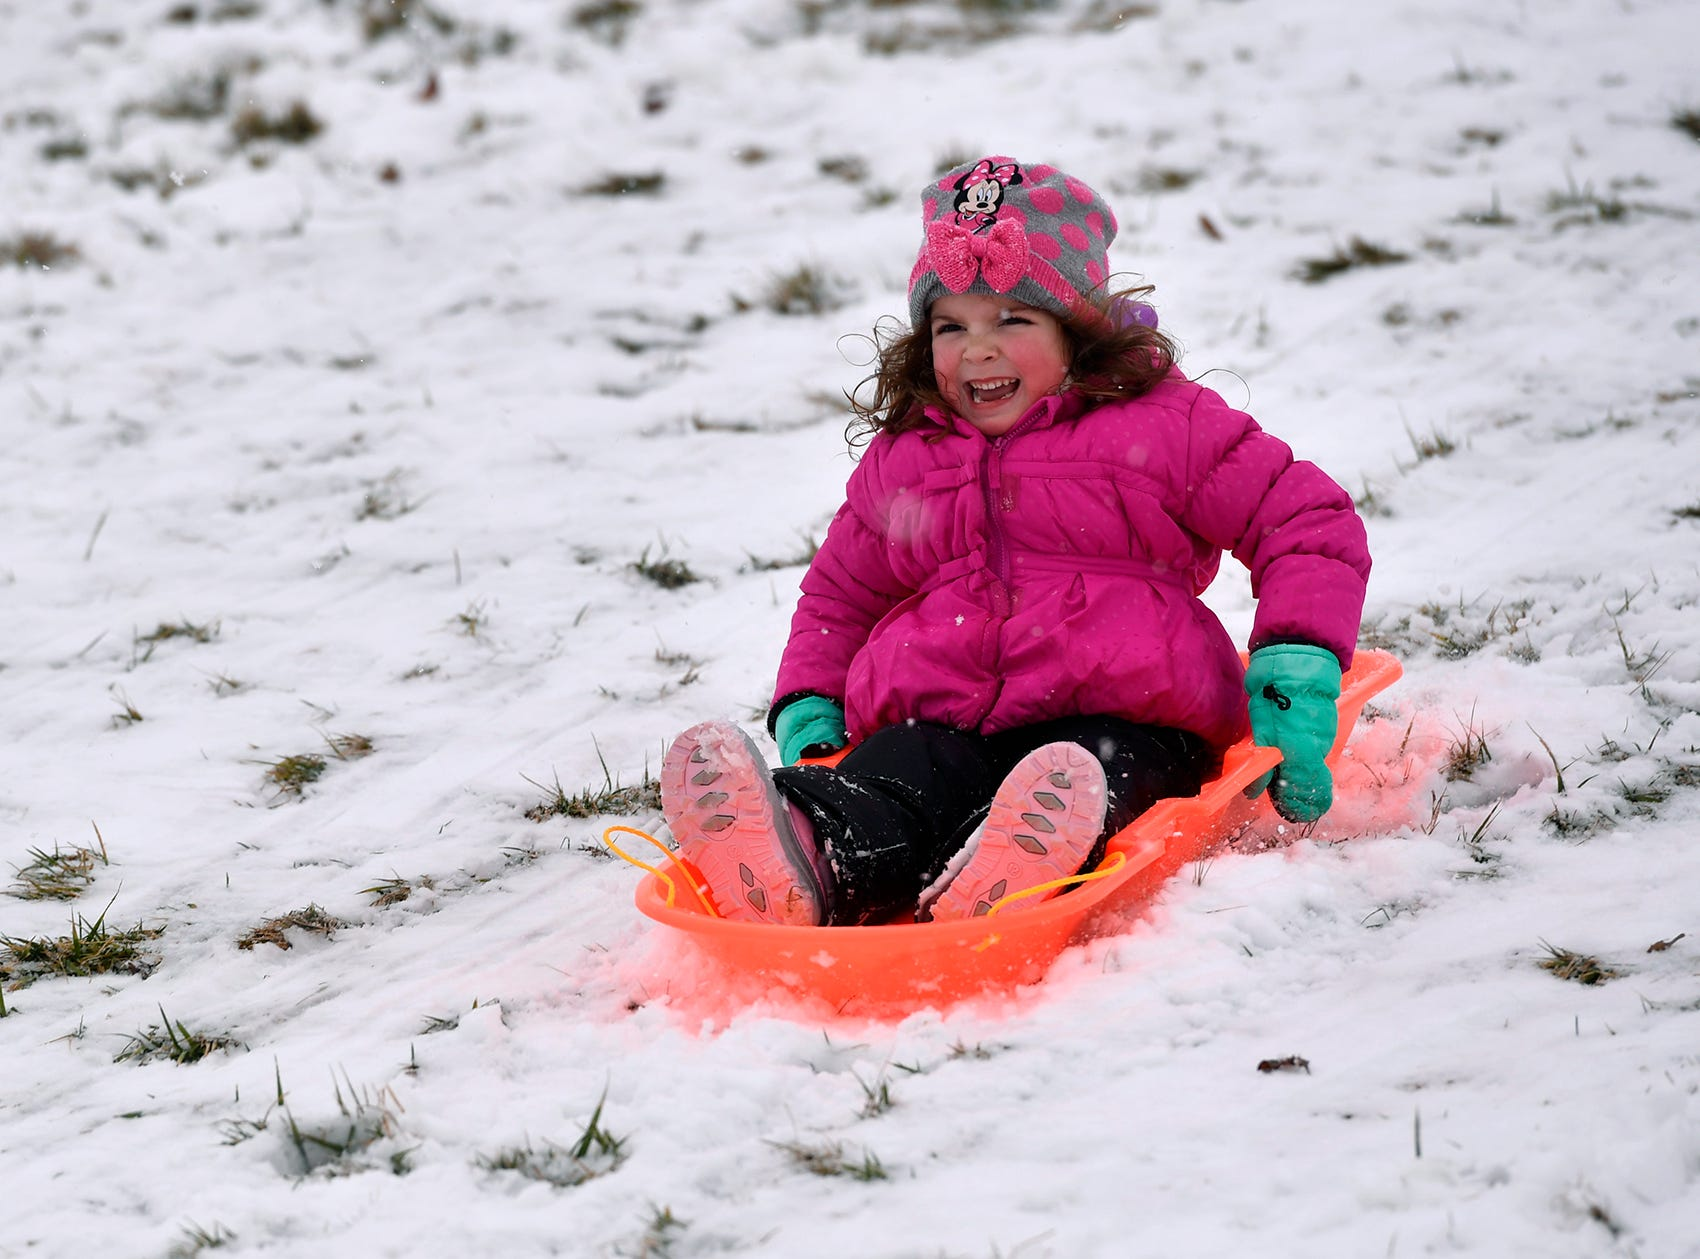 Kaleigh Ernst, 4, giggles as she slides down the hill on her sled at Springettsbury Park, Monday, February 11, 2019.John A. Pavoncello photo